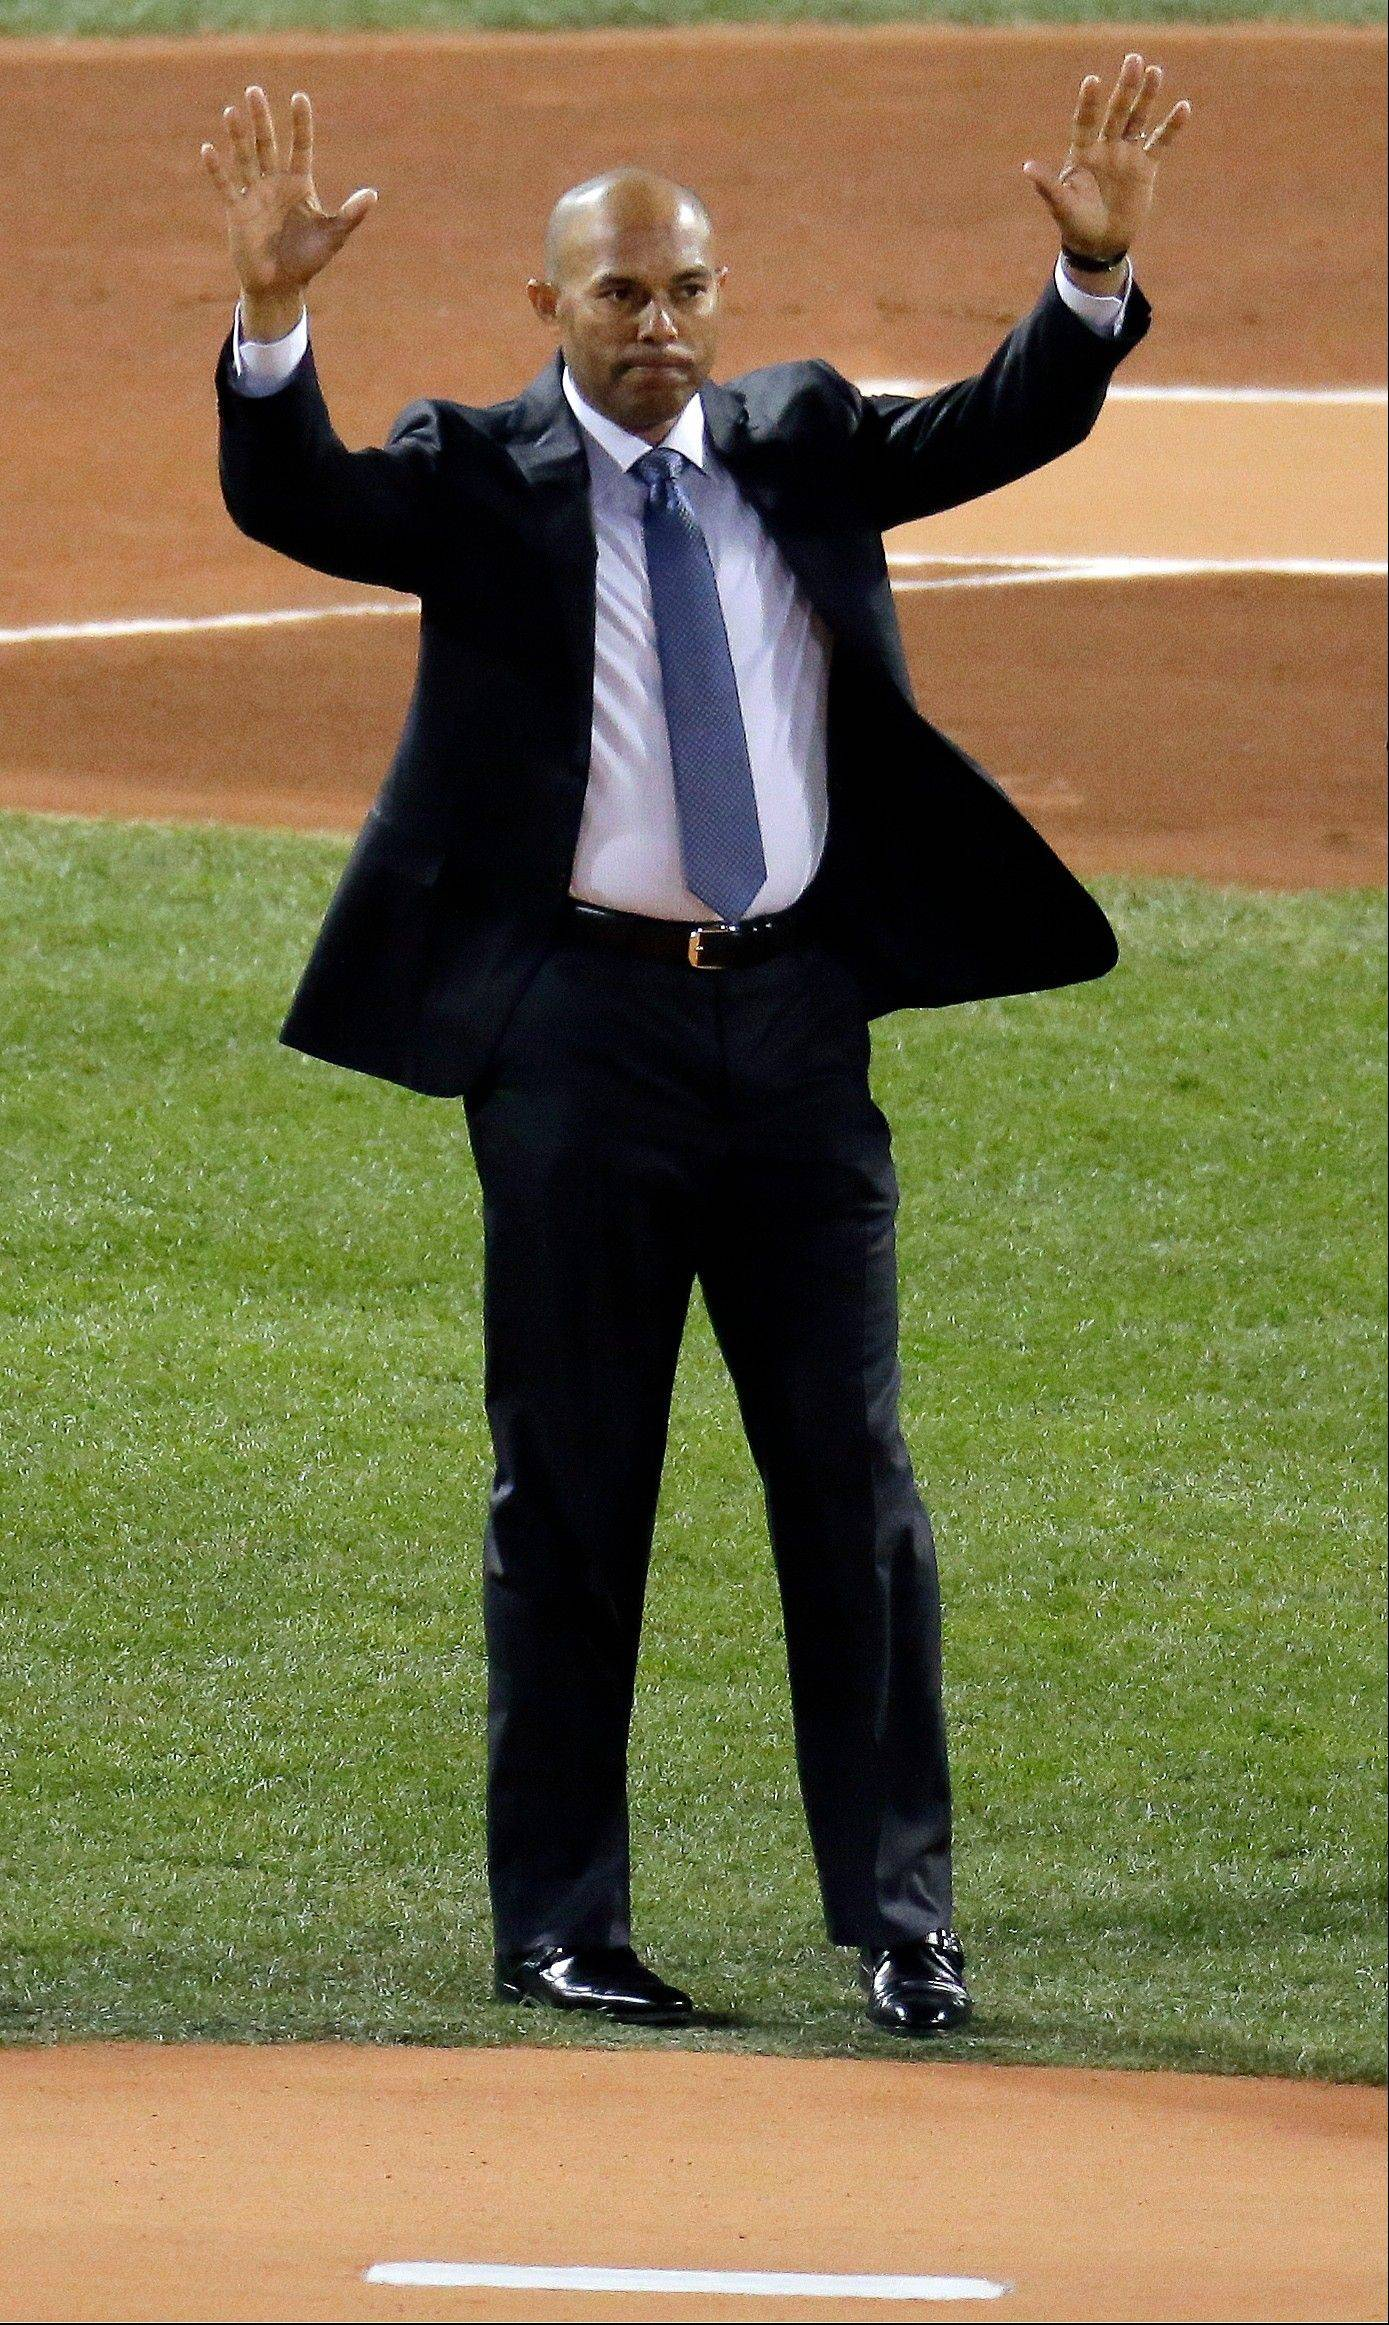 Former New York Yankees pitcher Mariano Rivera acknowledges the crowd before Game 2 of the World Series in Boston.